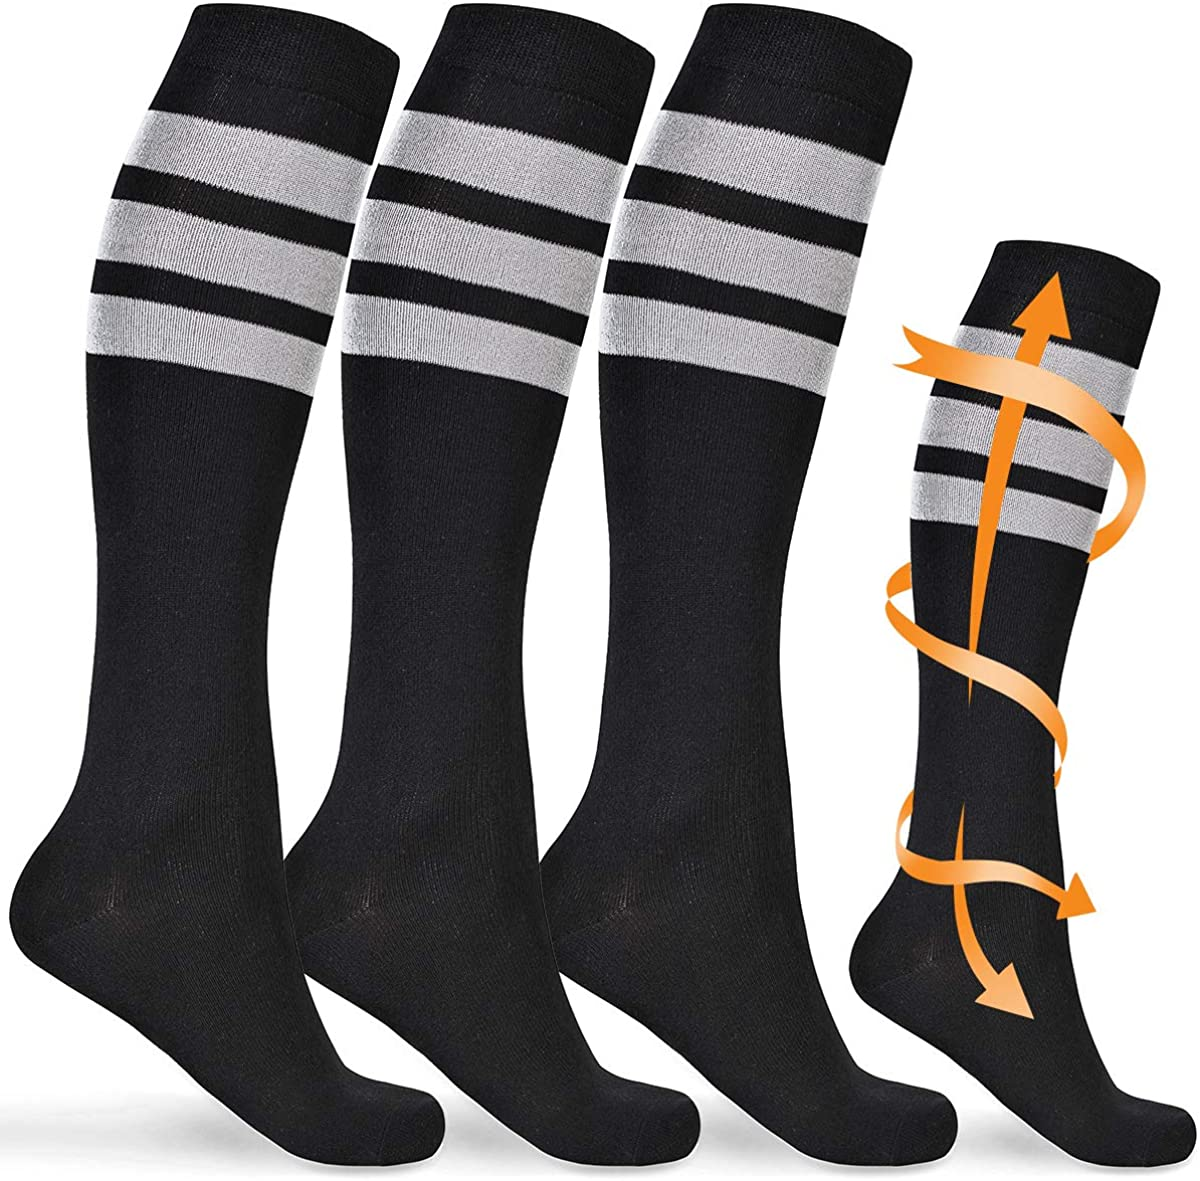 Compression Socks Women Men Circulation 15-20mmHg Black Knee High Socks Tall Long Socks for Nurses Maternity Golf